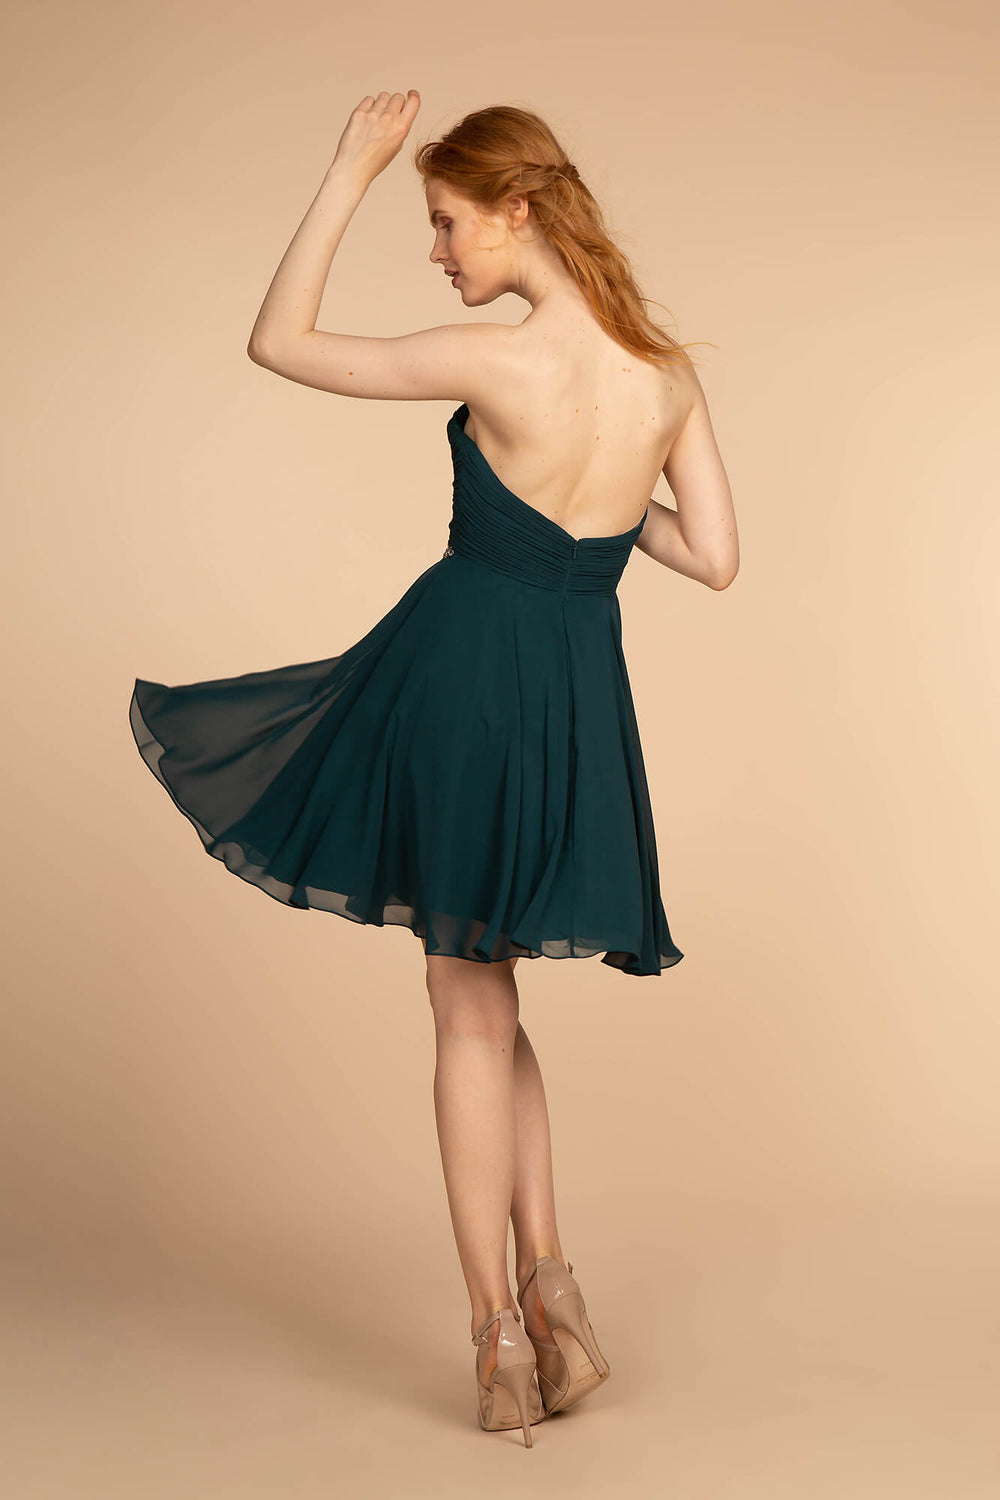 Strapless Short Cocktail Dress Formal - The Dress Outlet